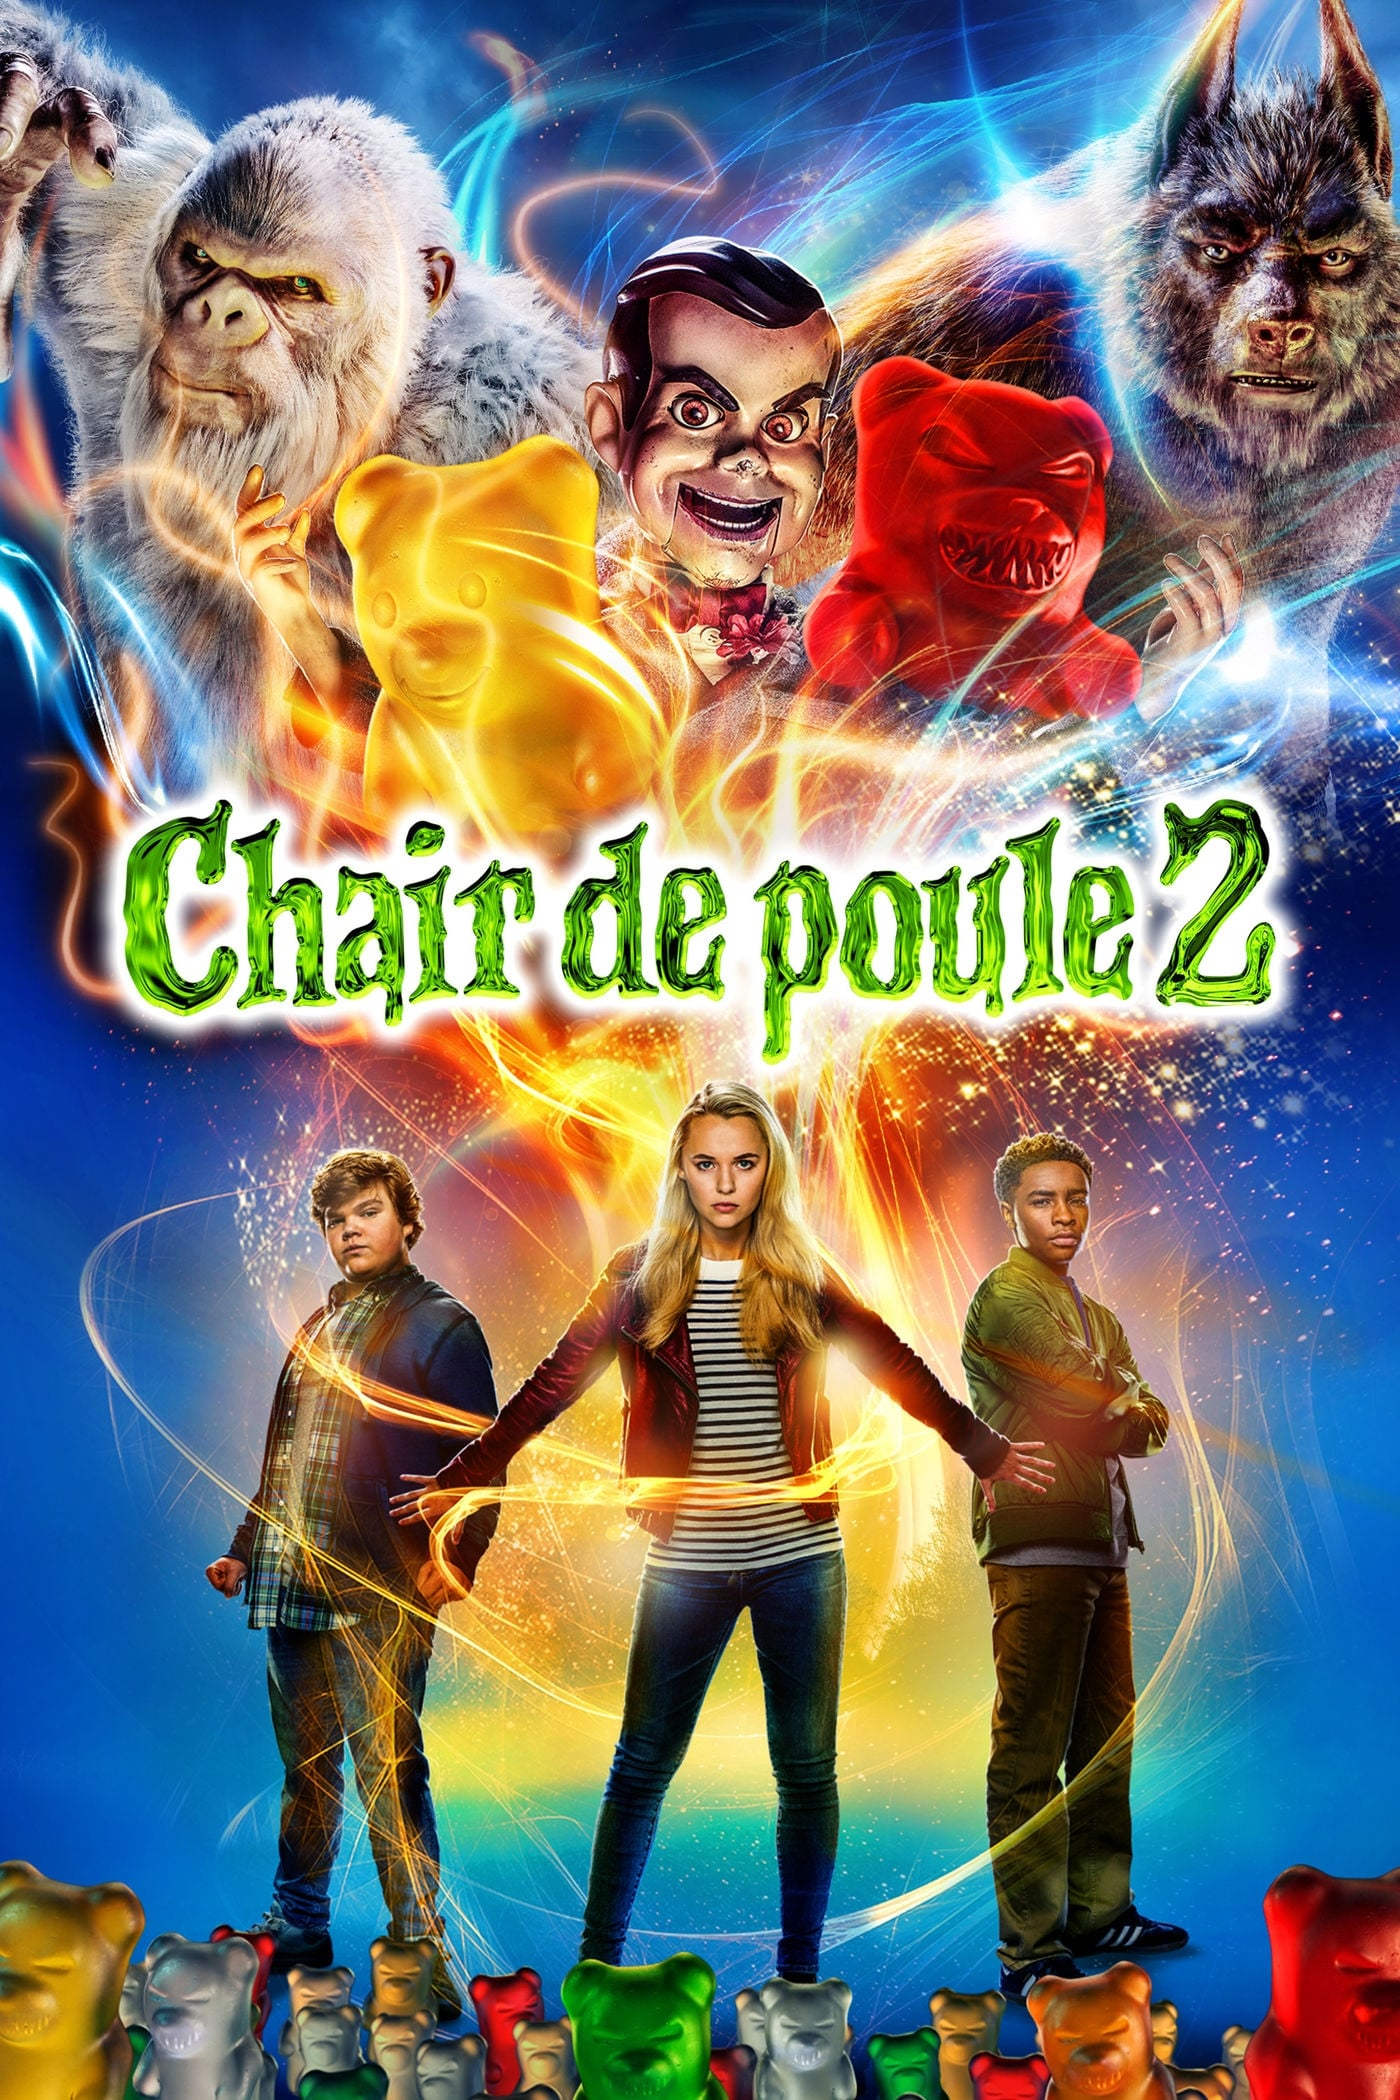 voir film Chair de poule 2 : Les Fantômes d'Halloween streaming